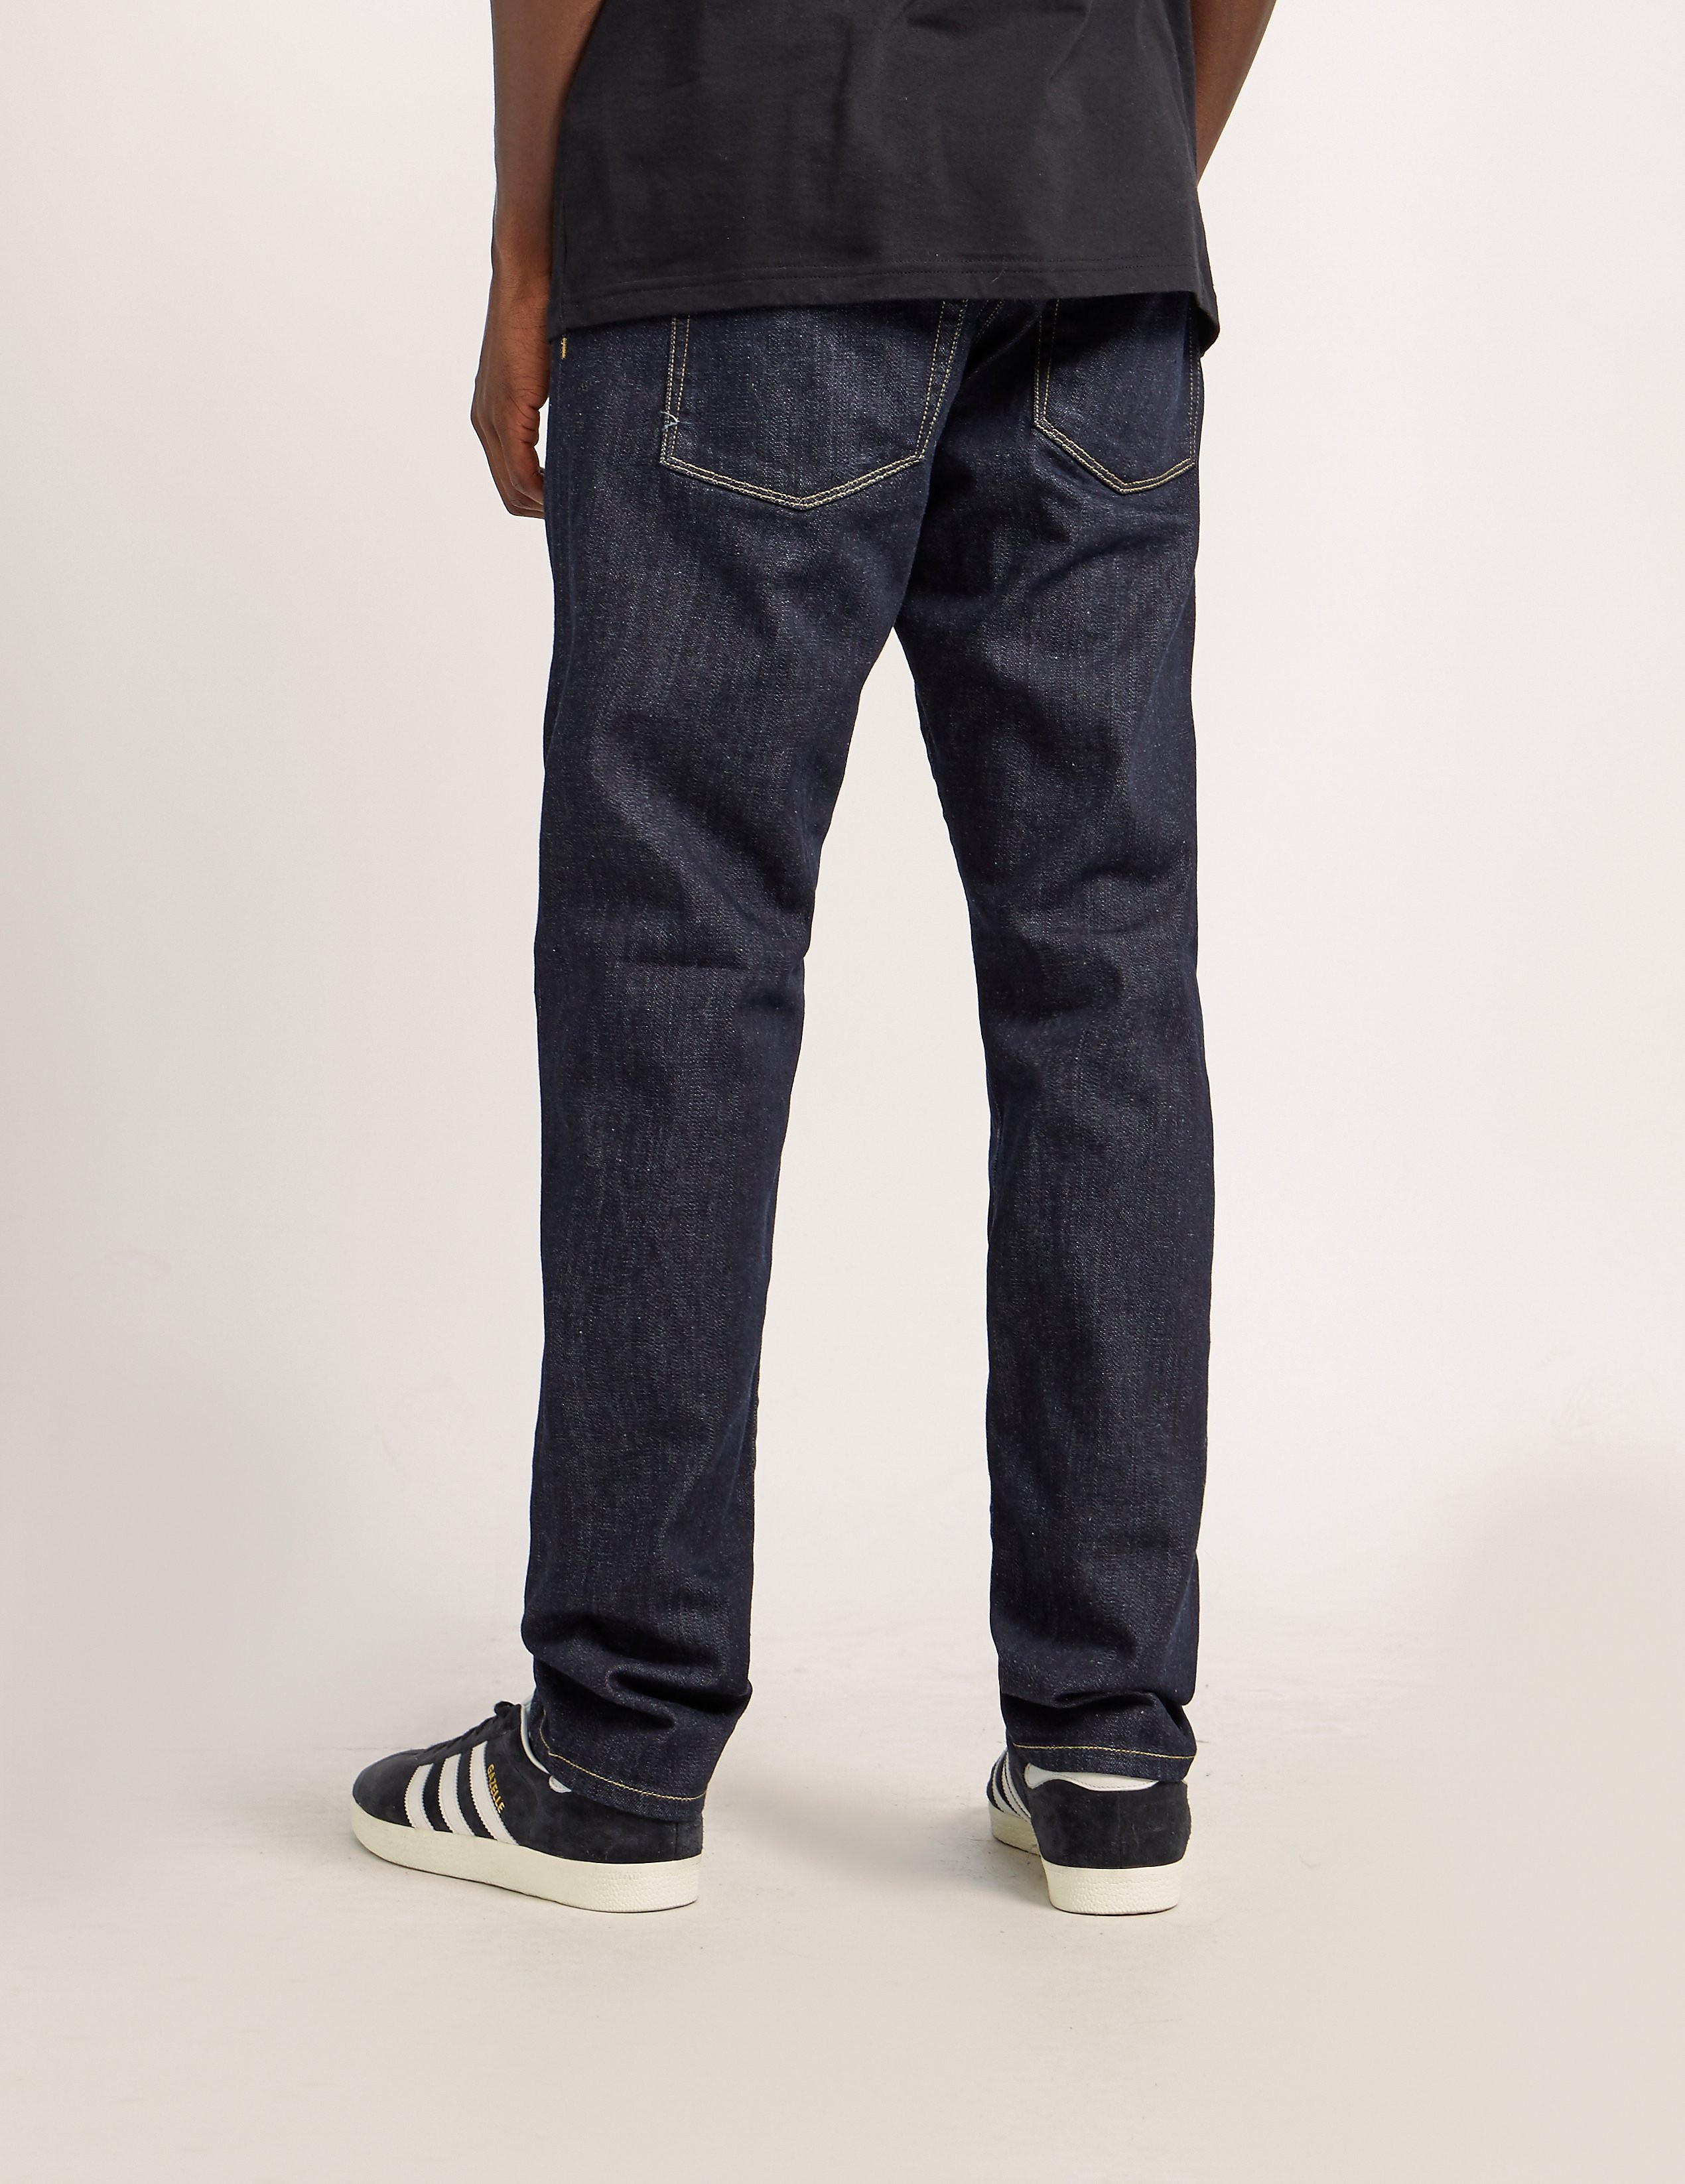 Carhartt WIP Vicious Spicer Jeans